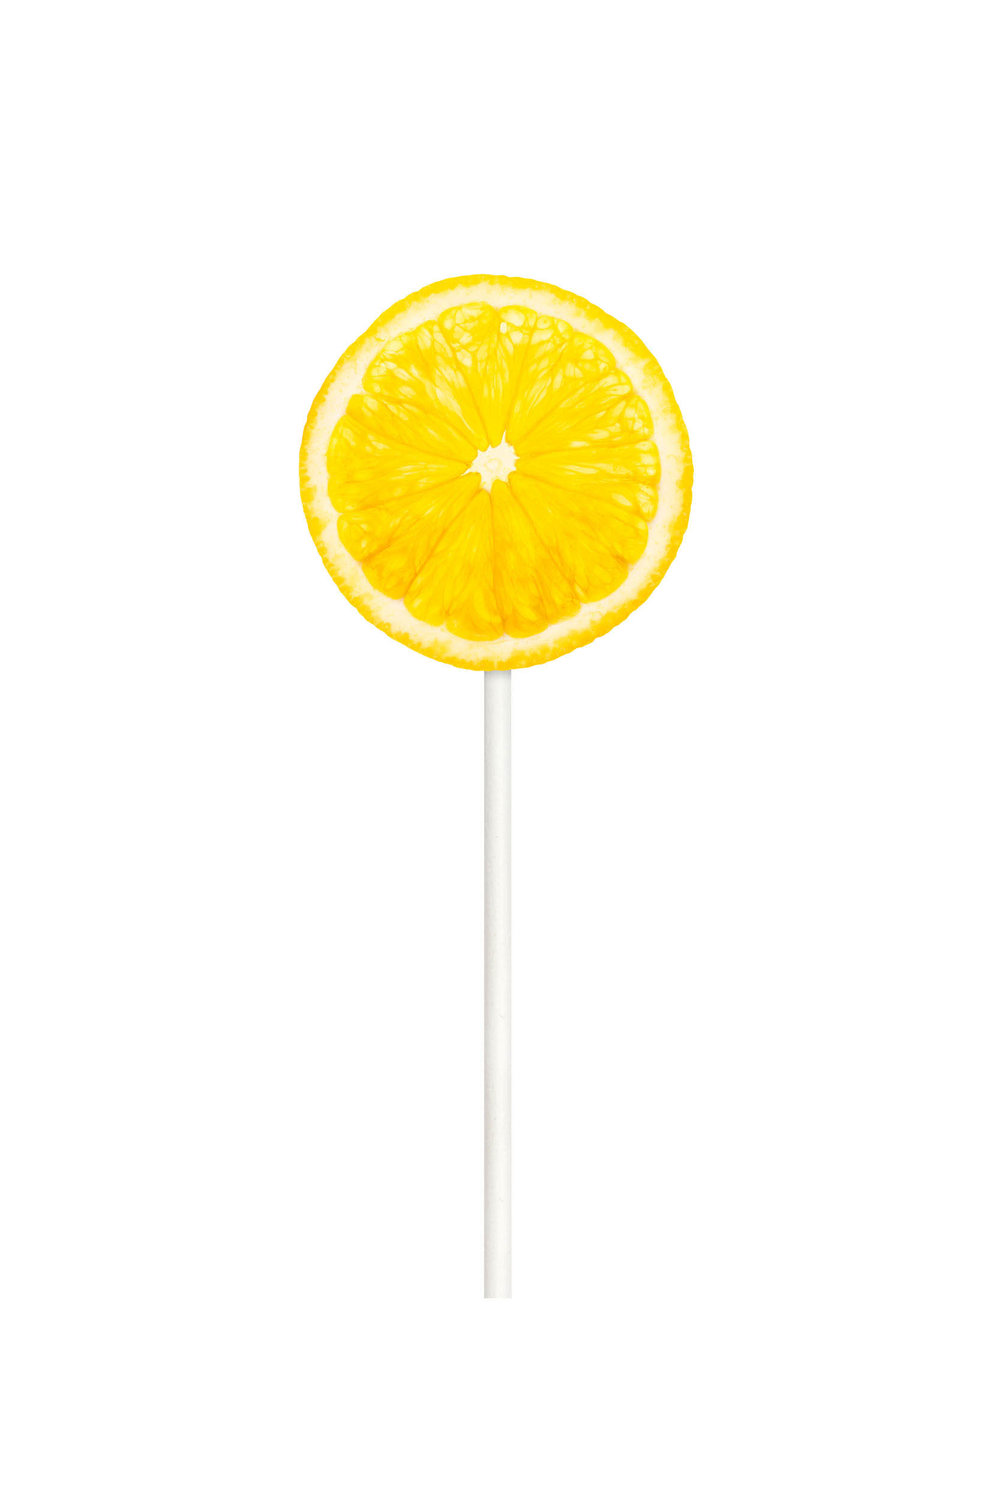 Lollipop-030.jpg